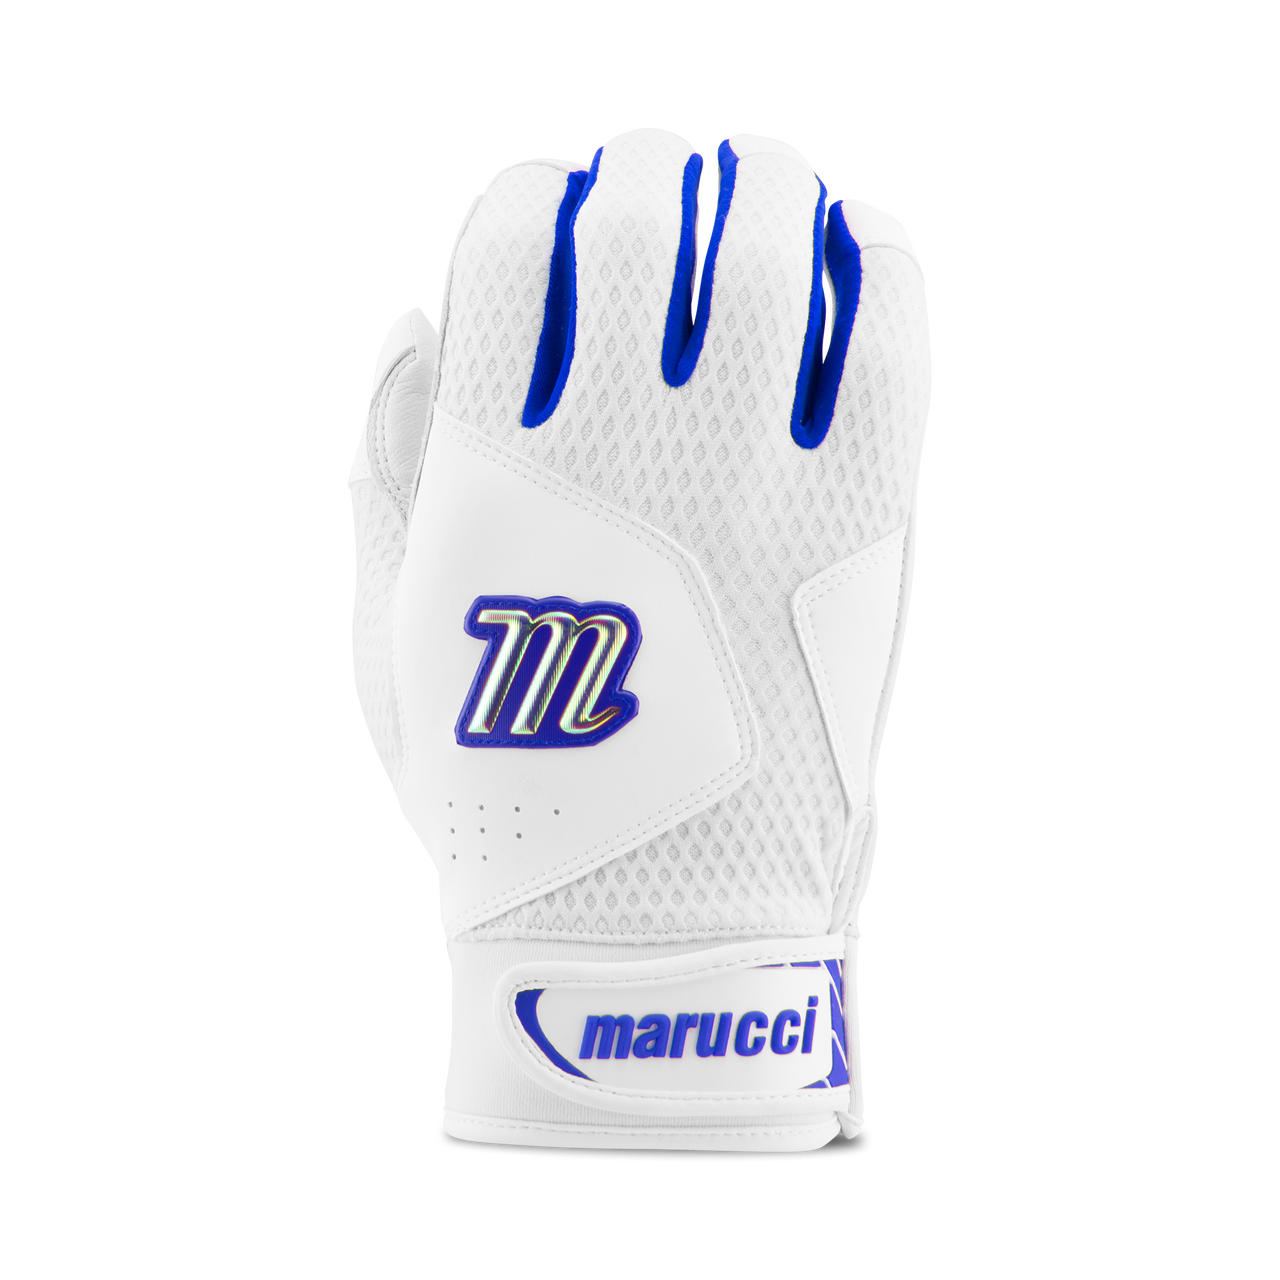 Marucci Adult Quest 2.0 Batting Gloves - White Royal